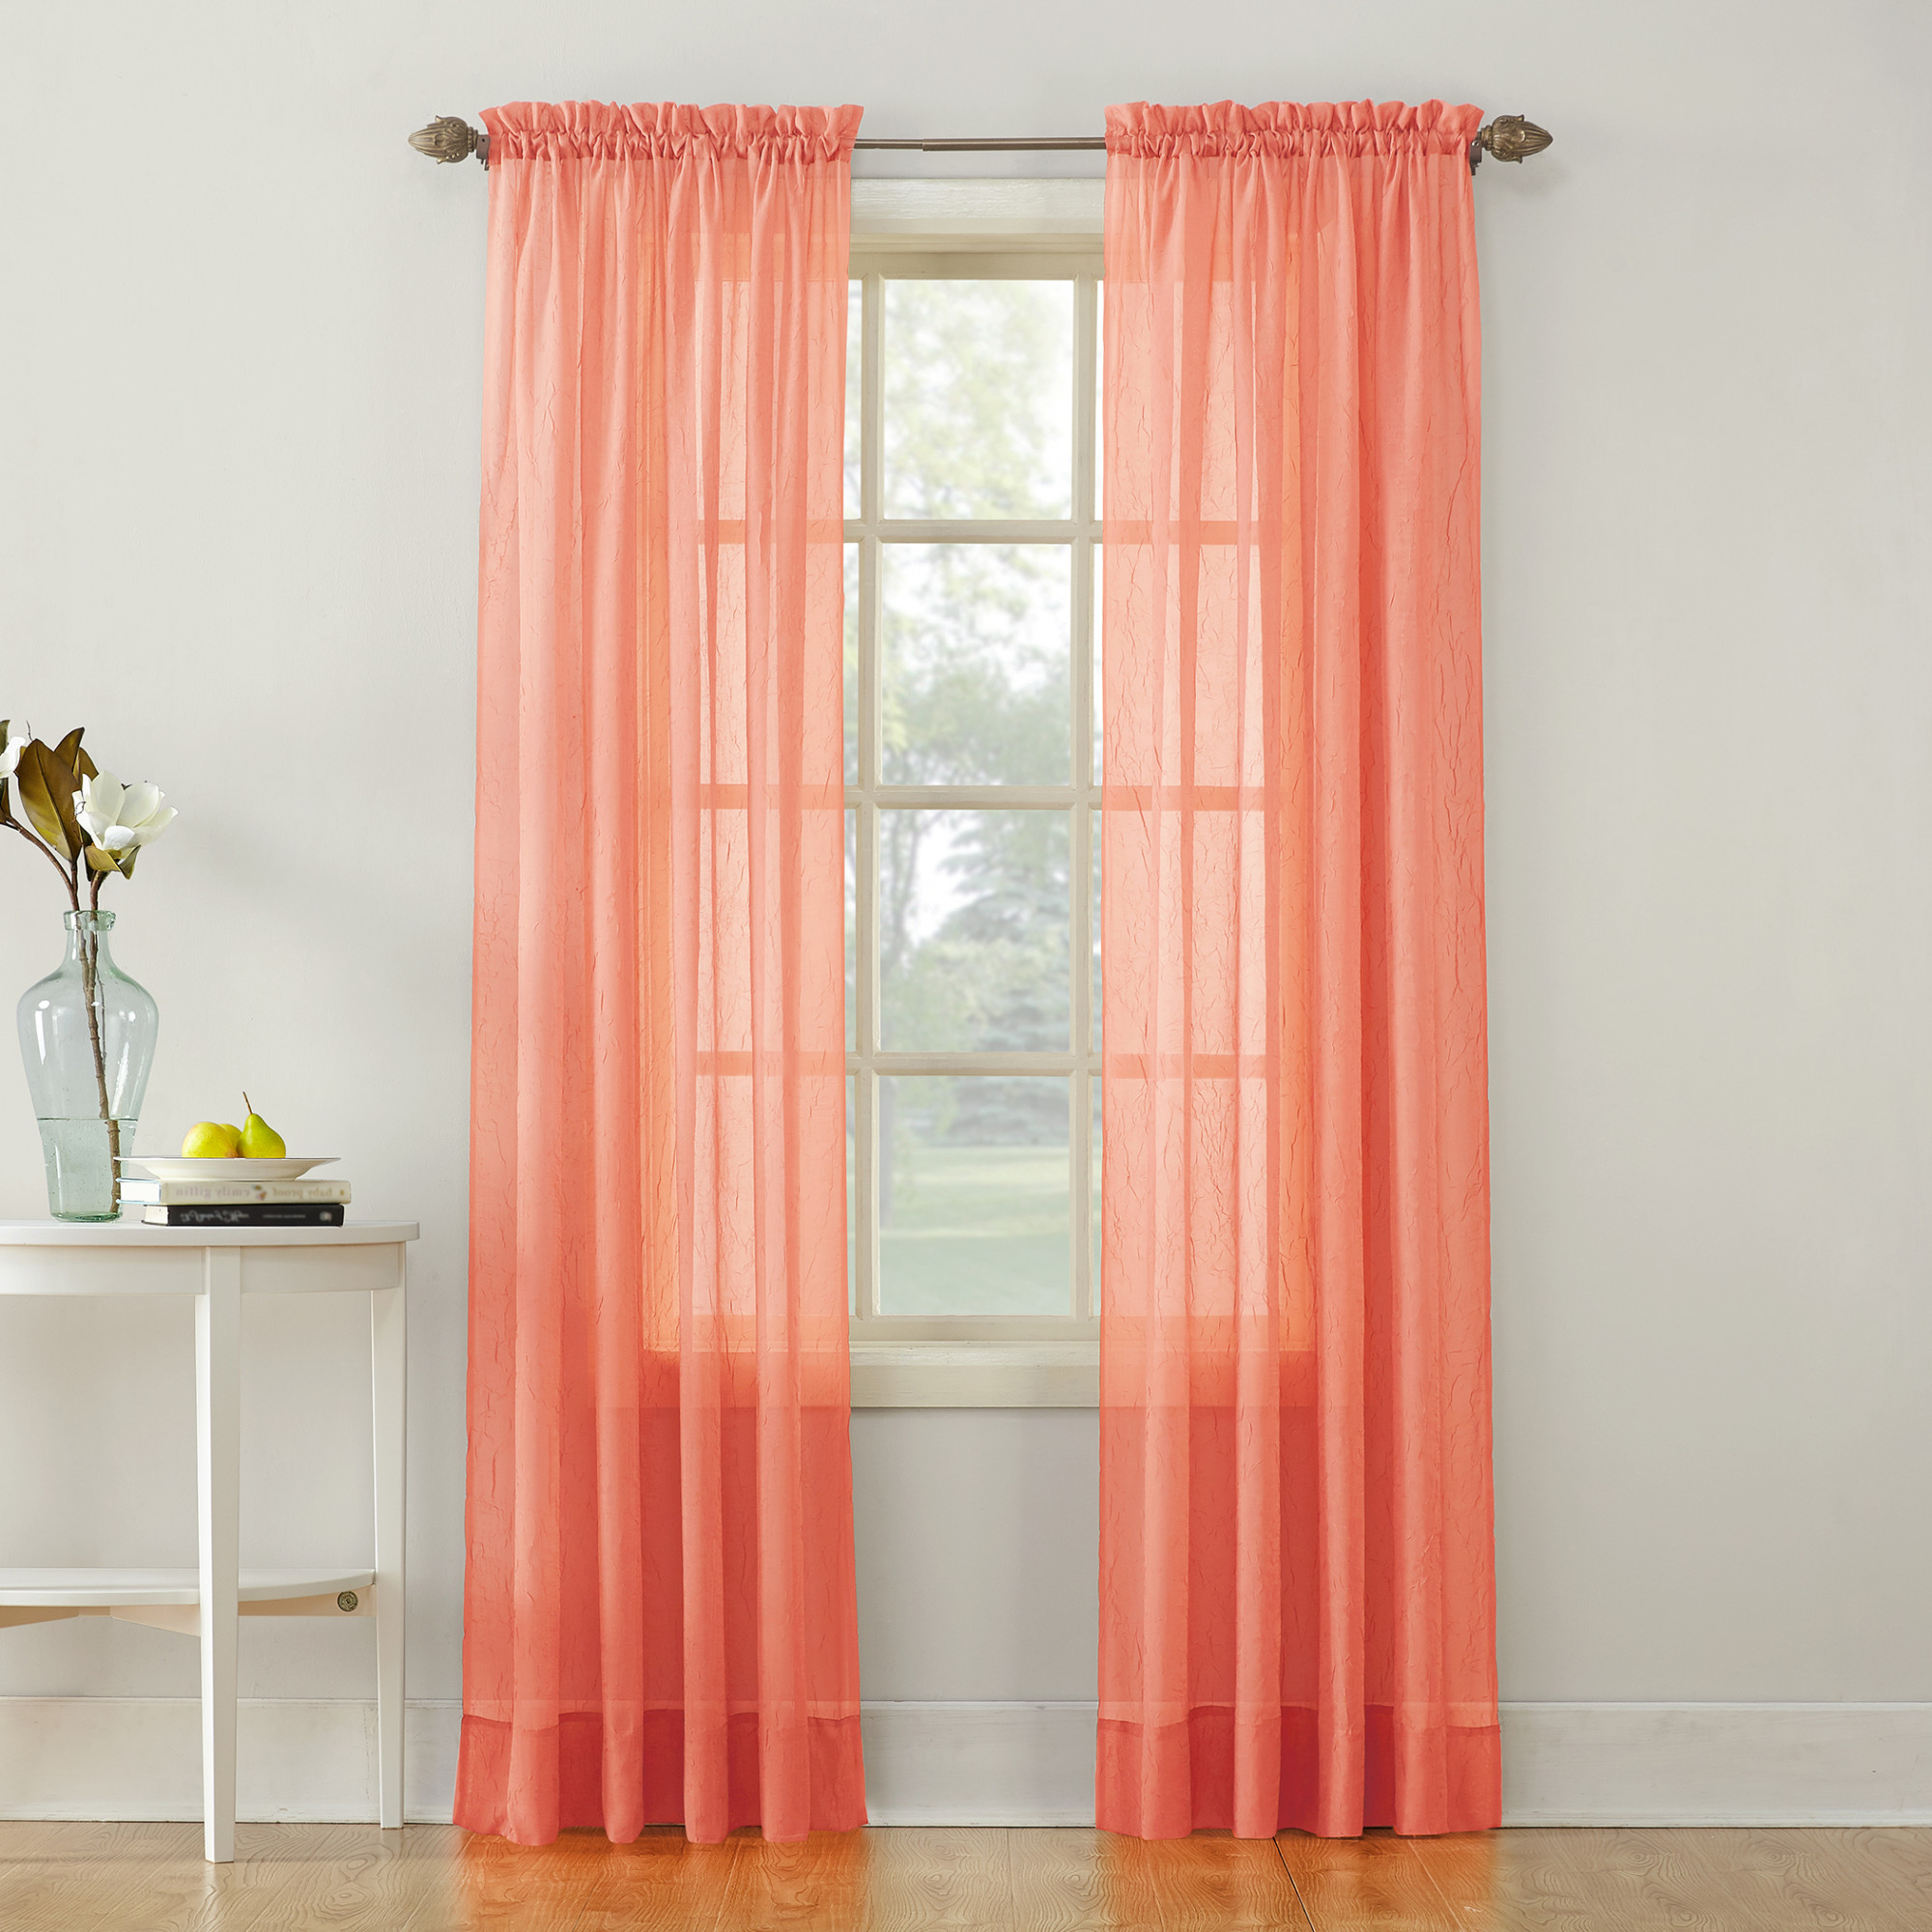 Well Known Erica Sheer Crushed Voile Single Curtain Panels Inside No (View 16 of 20)